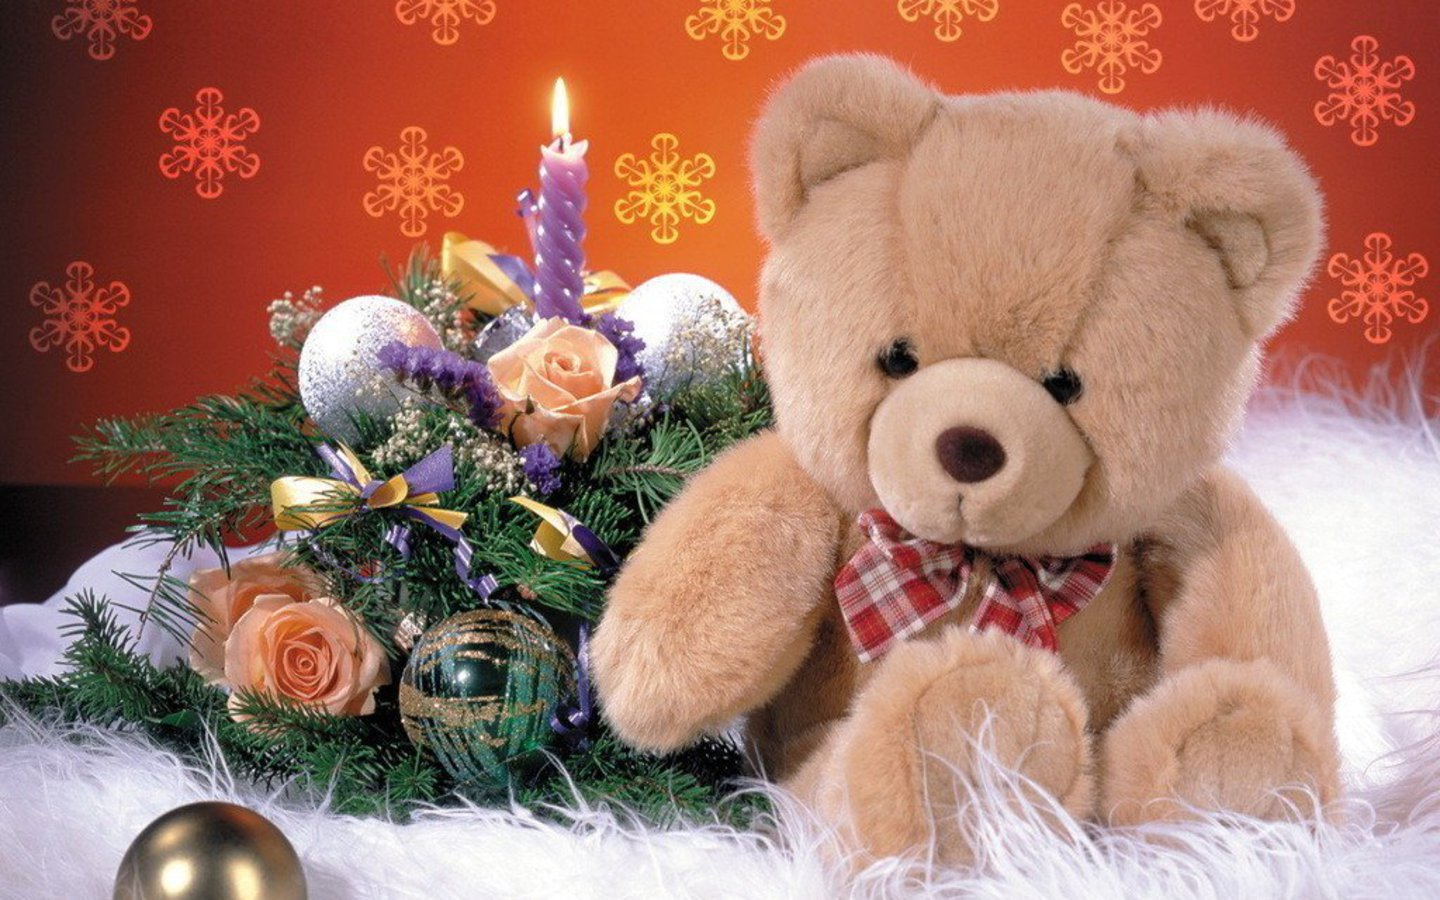 Happy teddy bear day sms wishes happiness style happy teddy bear day sms wishes m4hsunfo